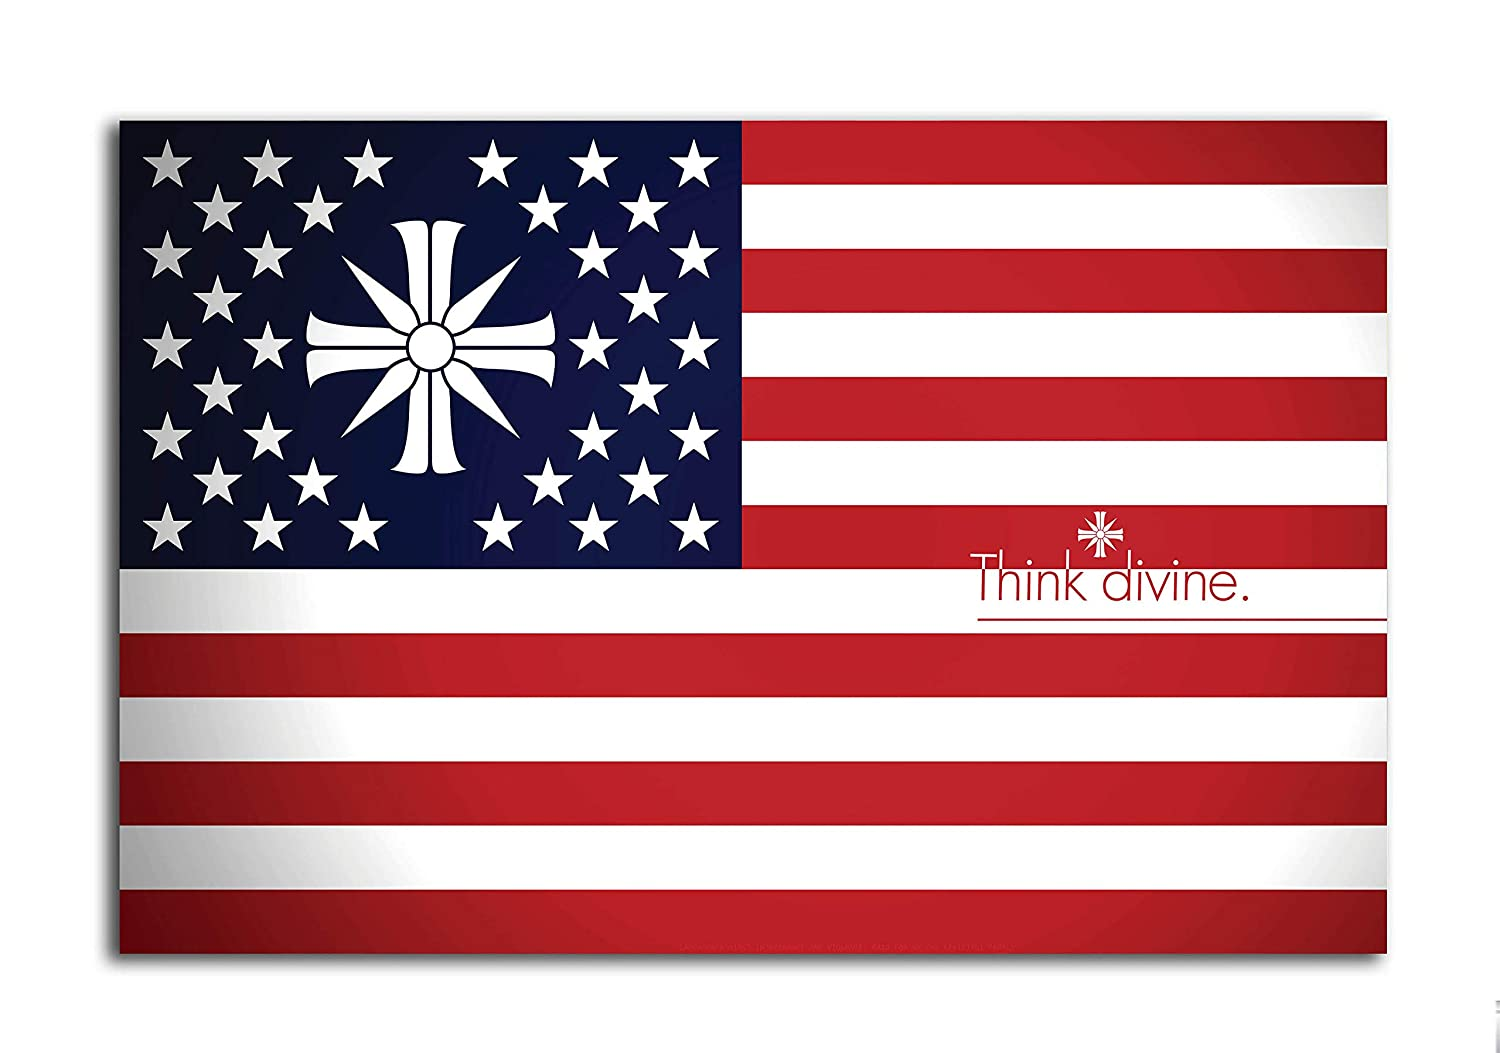 Tamatina Gaming Poster Far Cry 5 Flag Game Large Size Poster Hd Quality 36 Inches X 24 Inches 92 Cms X 61 Cms Amazon In Home Kitchen